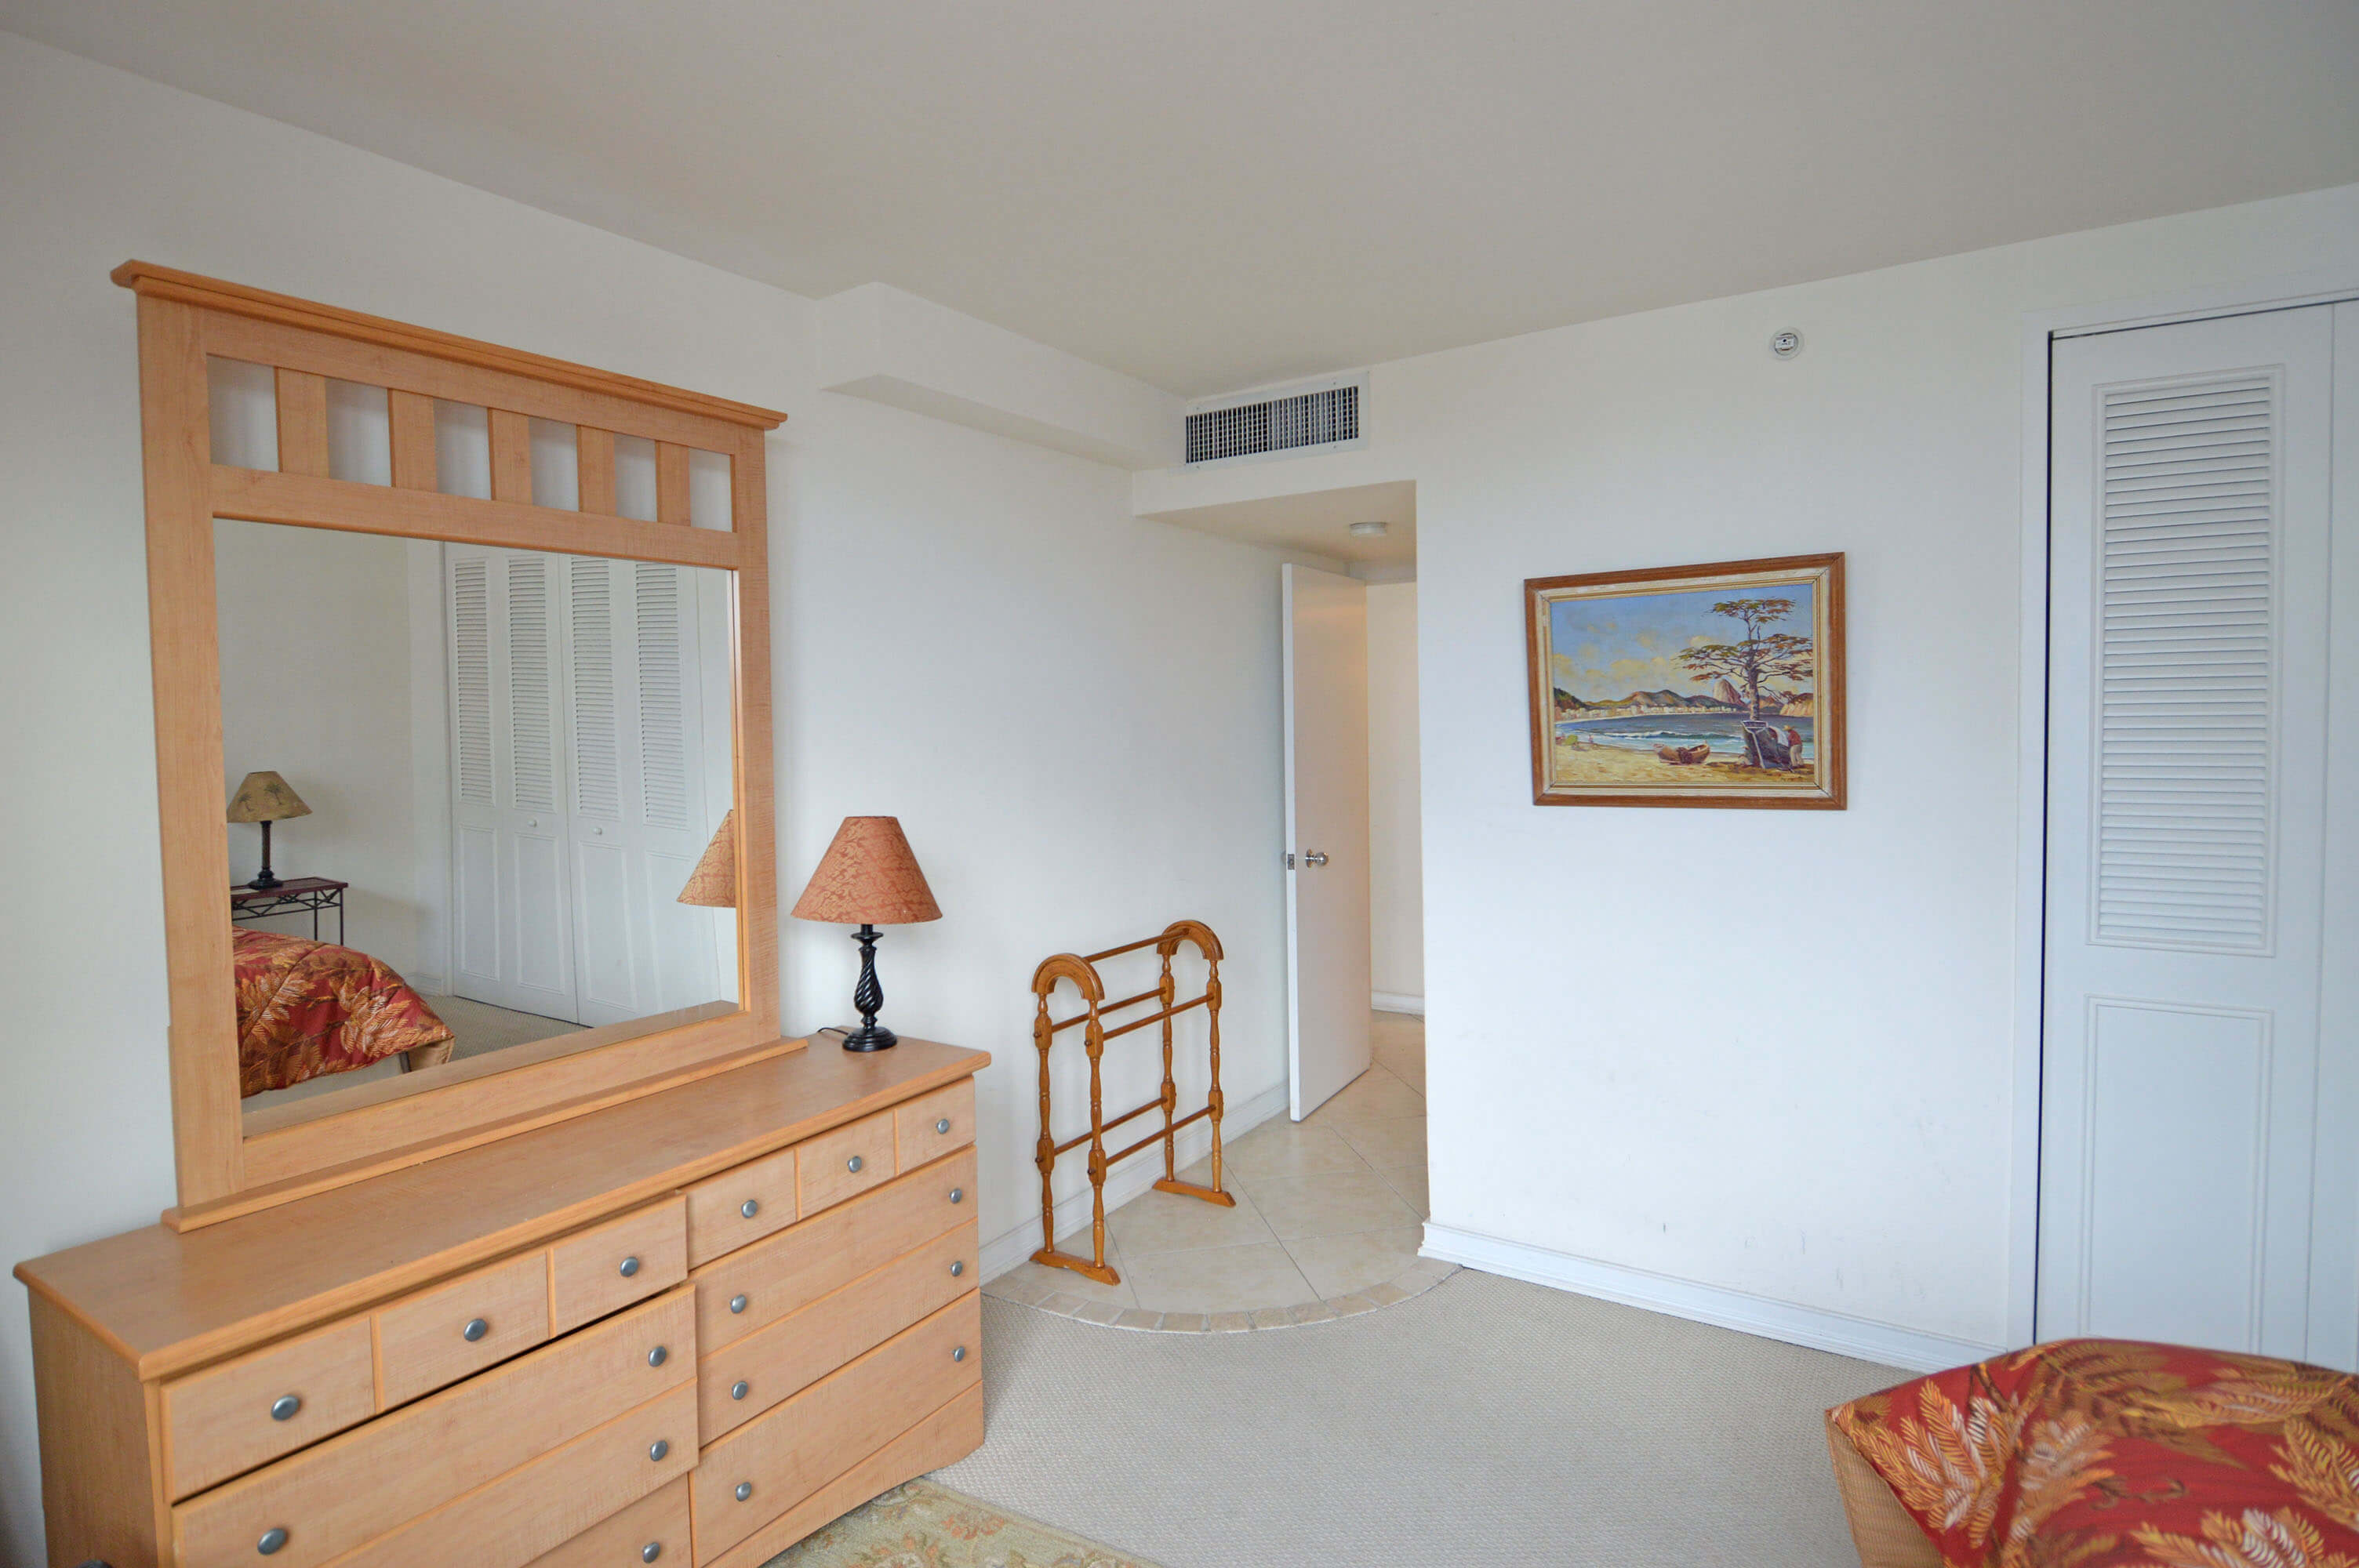 9195 Collins Avenue, Unit 1013 Surfside FL 33154 - Bedroom Exit